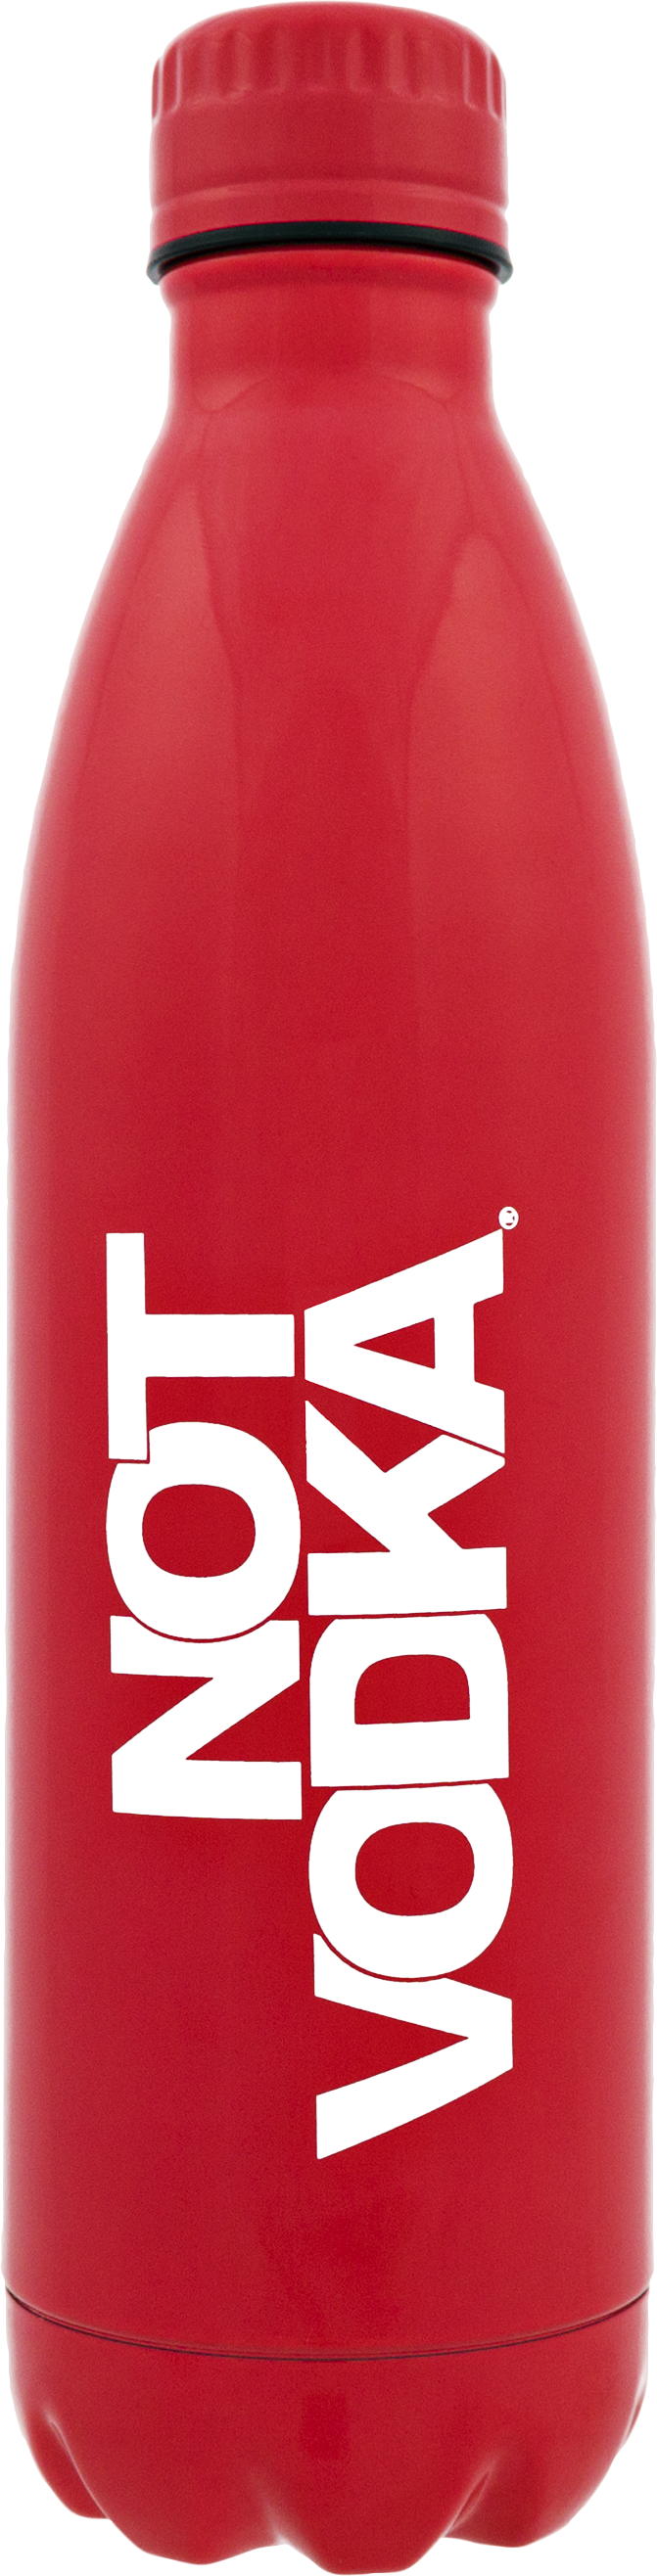 Signature Series Insulated Water Bottle Glossy Red, PACKAGE 1Ct